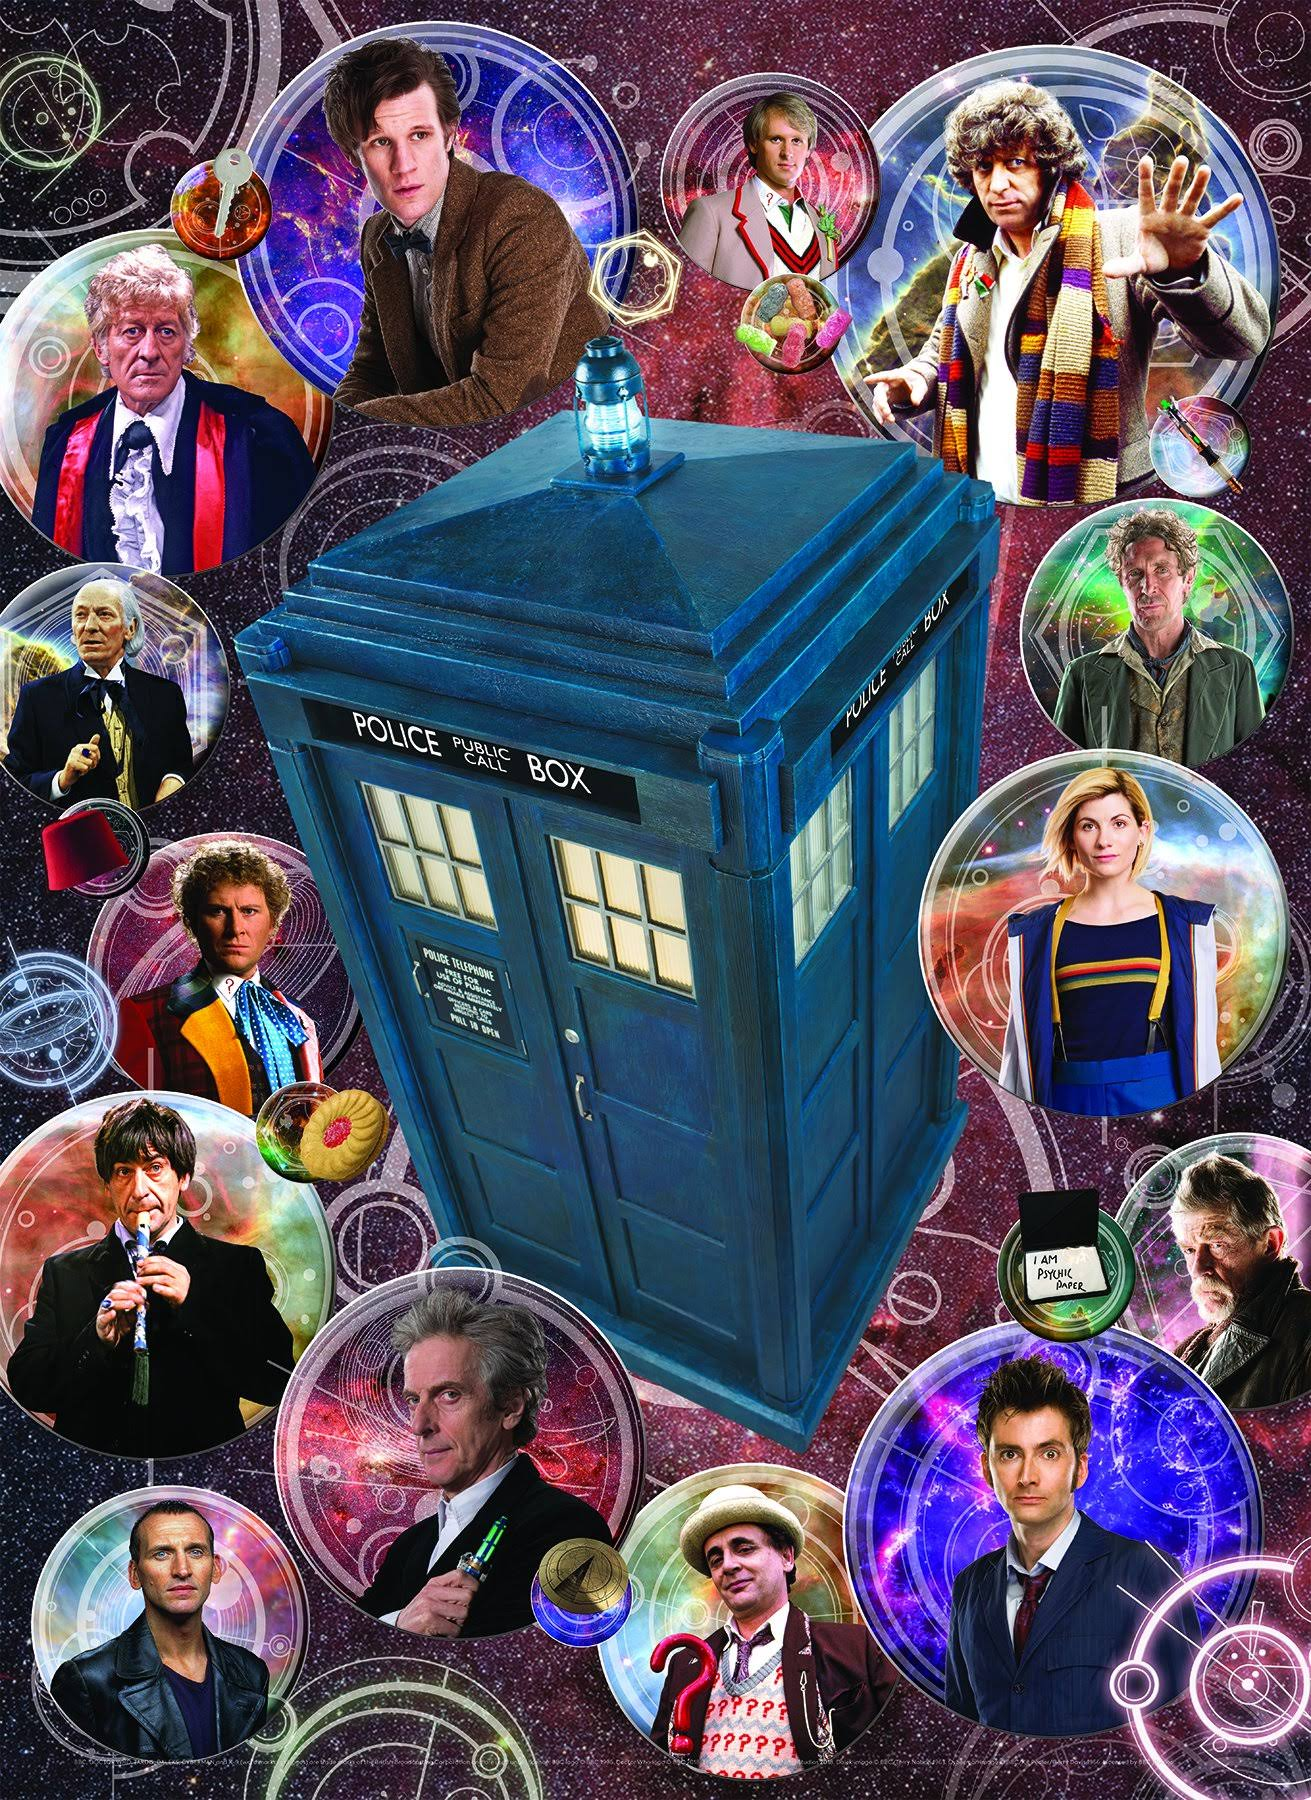 Cobble Hill Doctor Who Puzzle - 1000 Pieces